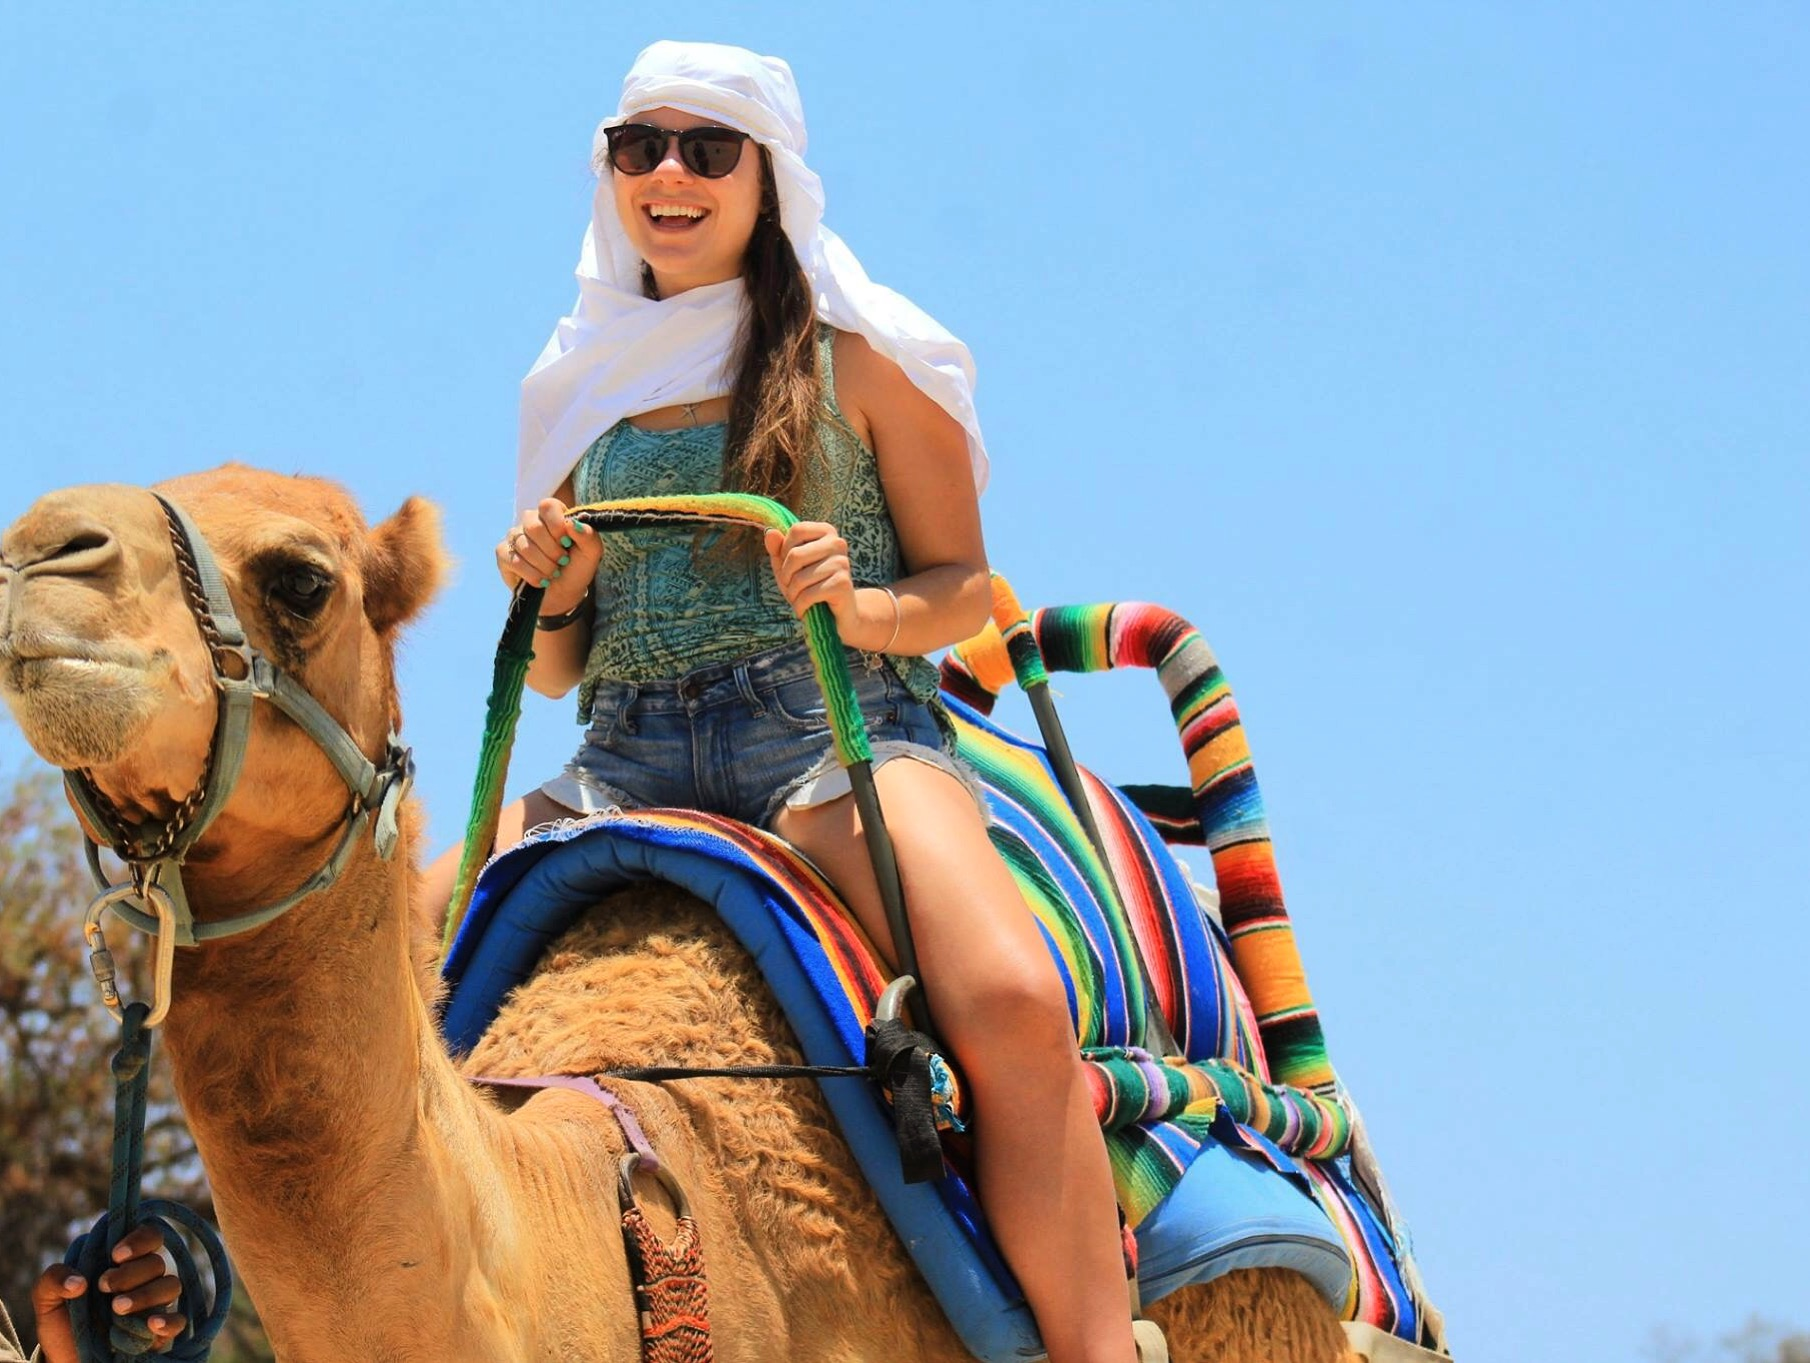 Jessica, camel riding in Cabo.